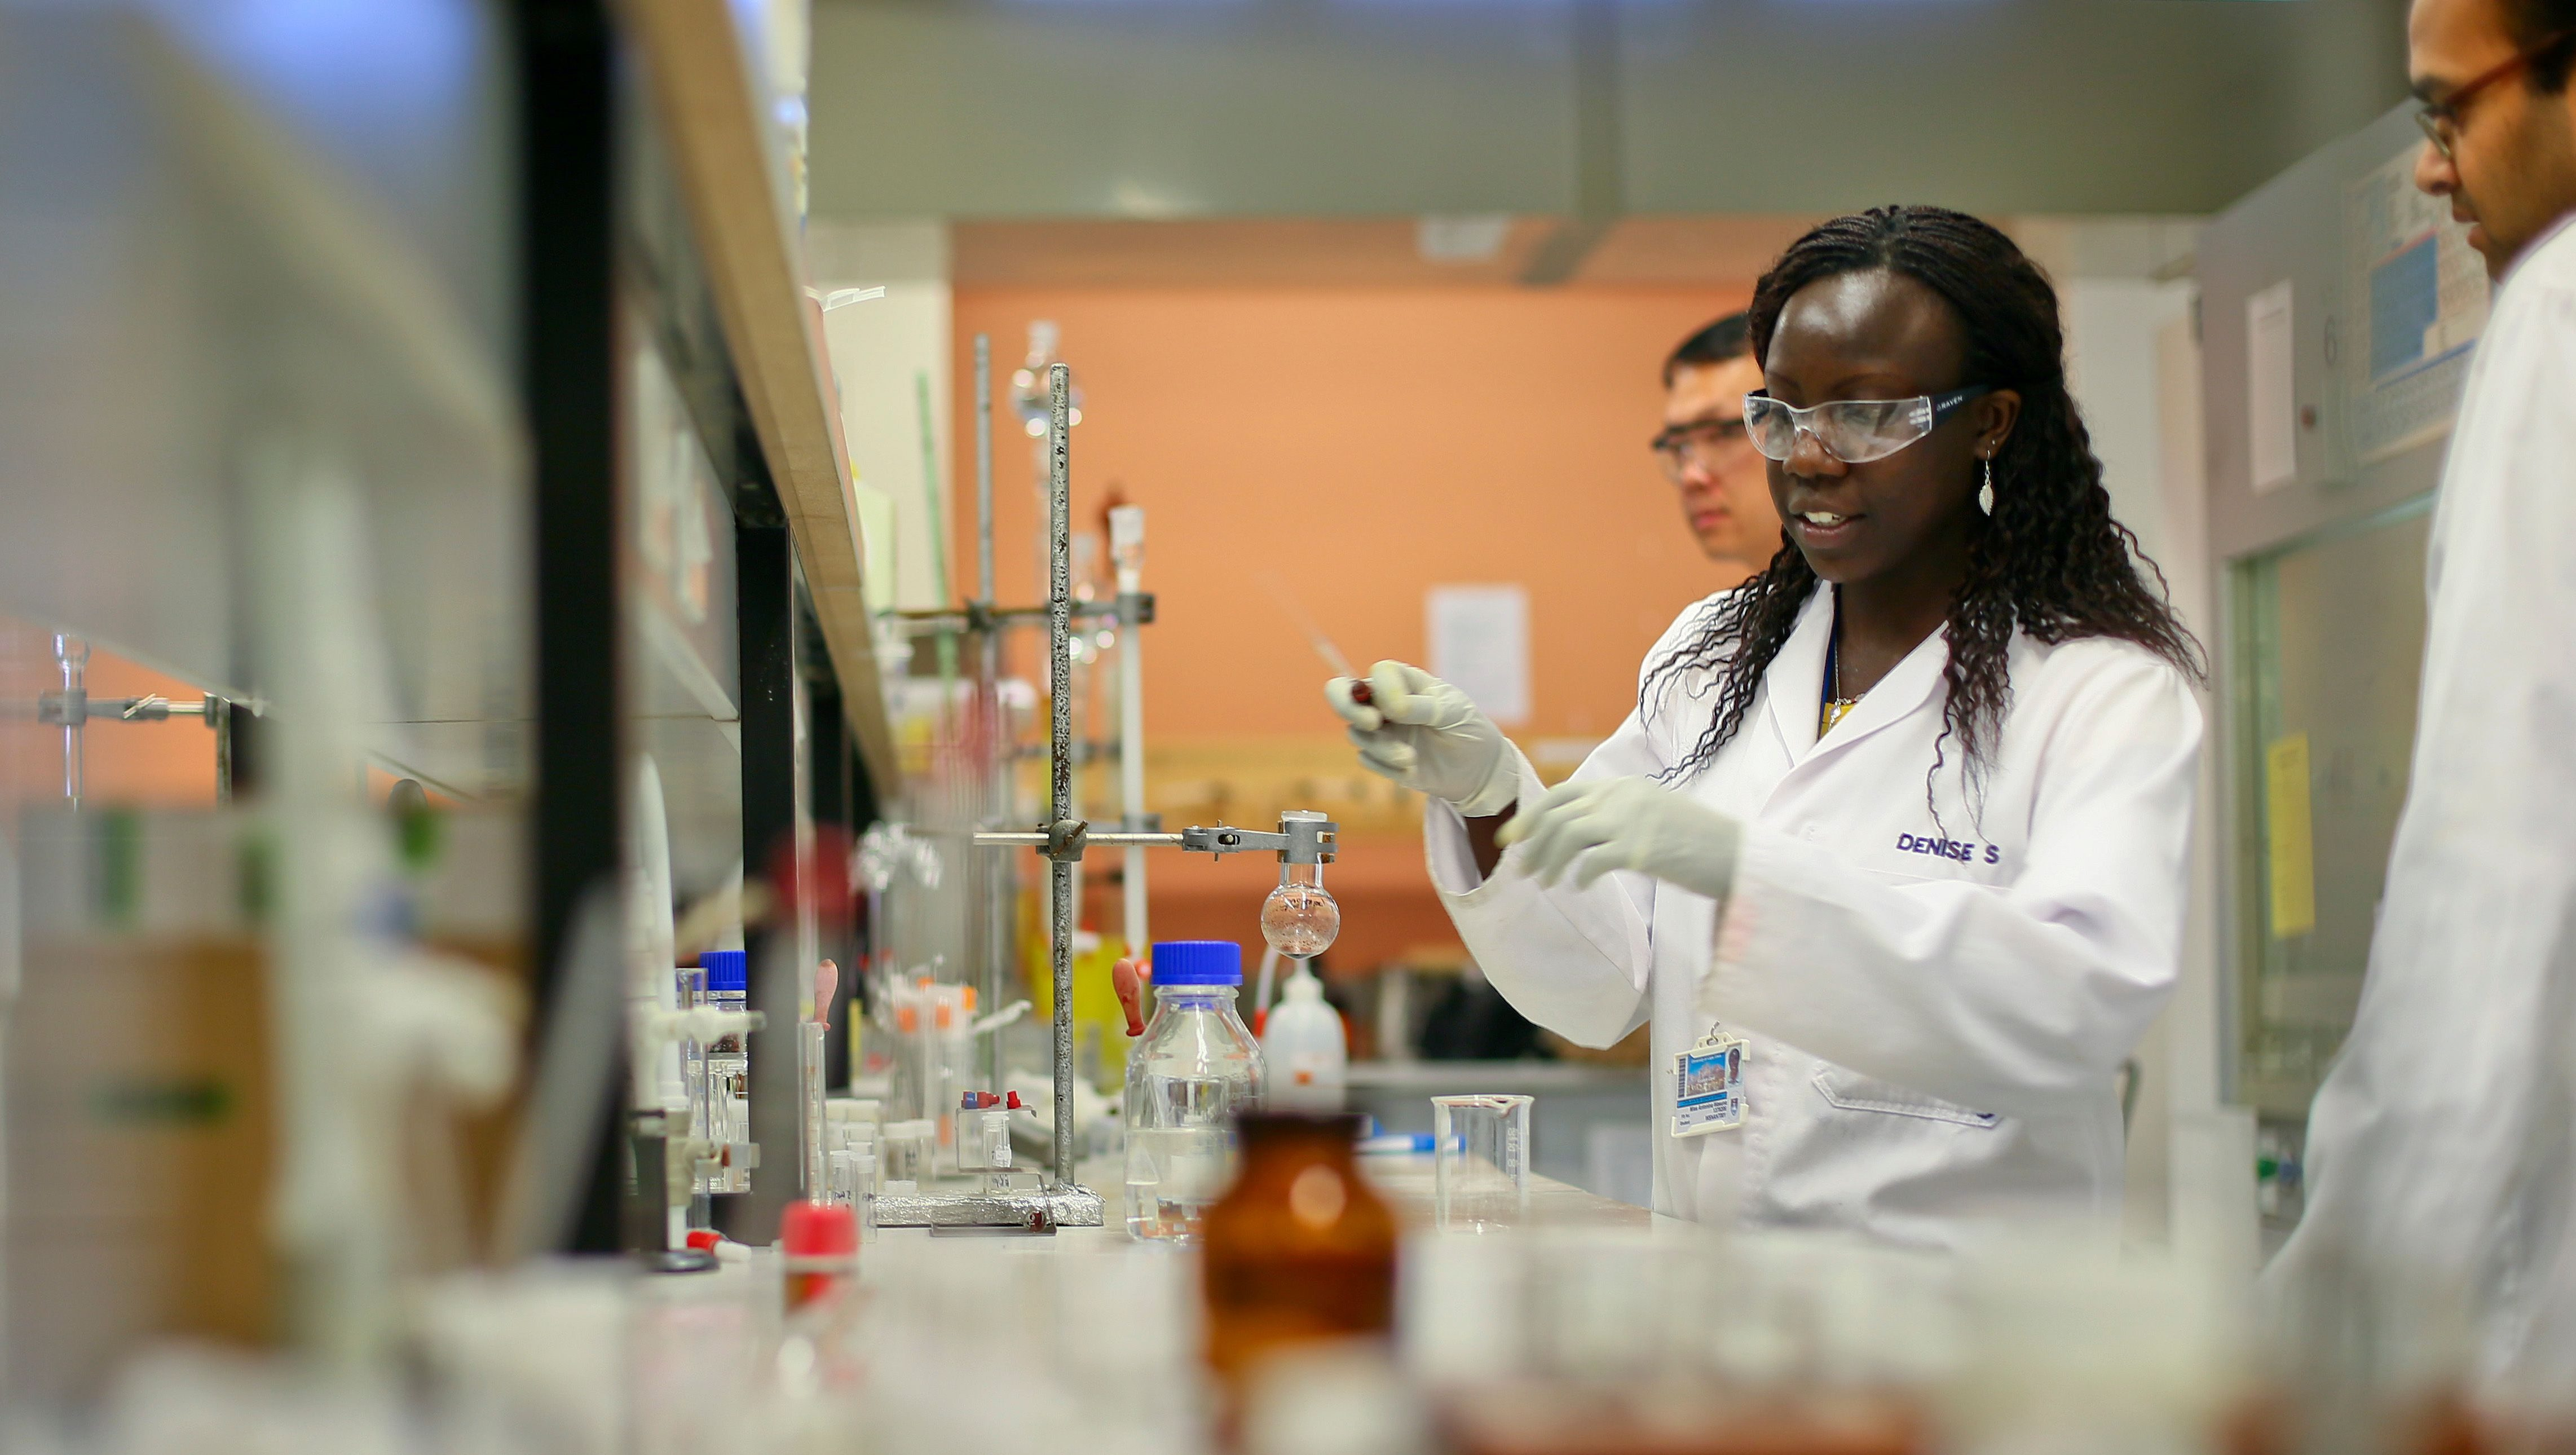 epa05913087 (FILE) - University of Cape Town (UCT) scientists work in the Drug Discovery and Development Centre (H3-D) laboratory in Cape Town, South Africa, 30 August 2012. South African Science and Technology Minister Naledi Pandor announced 28 August 2012 the discovery of a compound that has the potential to become a single-dose cure for all strains of Malaria. The synthetic molecule from the aminopyridine class was discovered by the H3-D scientists in collaboration with the Medicines for Malaria Venture (MMV) from Switzerland. Professor Kelly Chibale from UCT, leading researcher of the collaborative research project is quoted as saying the molecule had not been tested on humans yet but animal studies had shown 'potent activity against multiple points in the malaria parasite's lifecycle' This is the first compound researched in Africa to enter pre-clinical development that may lead to the single dose cure for Malaria as well as be able to block transmission of the parasite from person to person. World Malaria Day is on 25 April 2017 and will be marked with the theme 'End Malaria for Good' for the second time running.